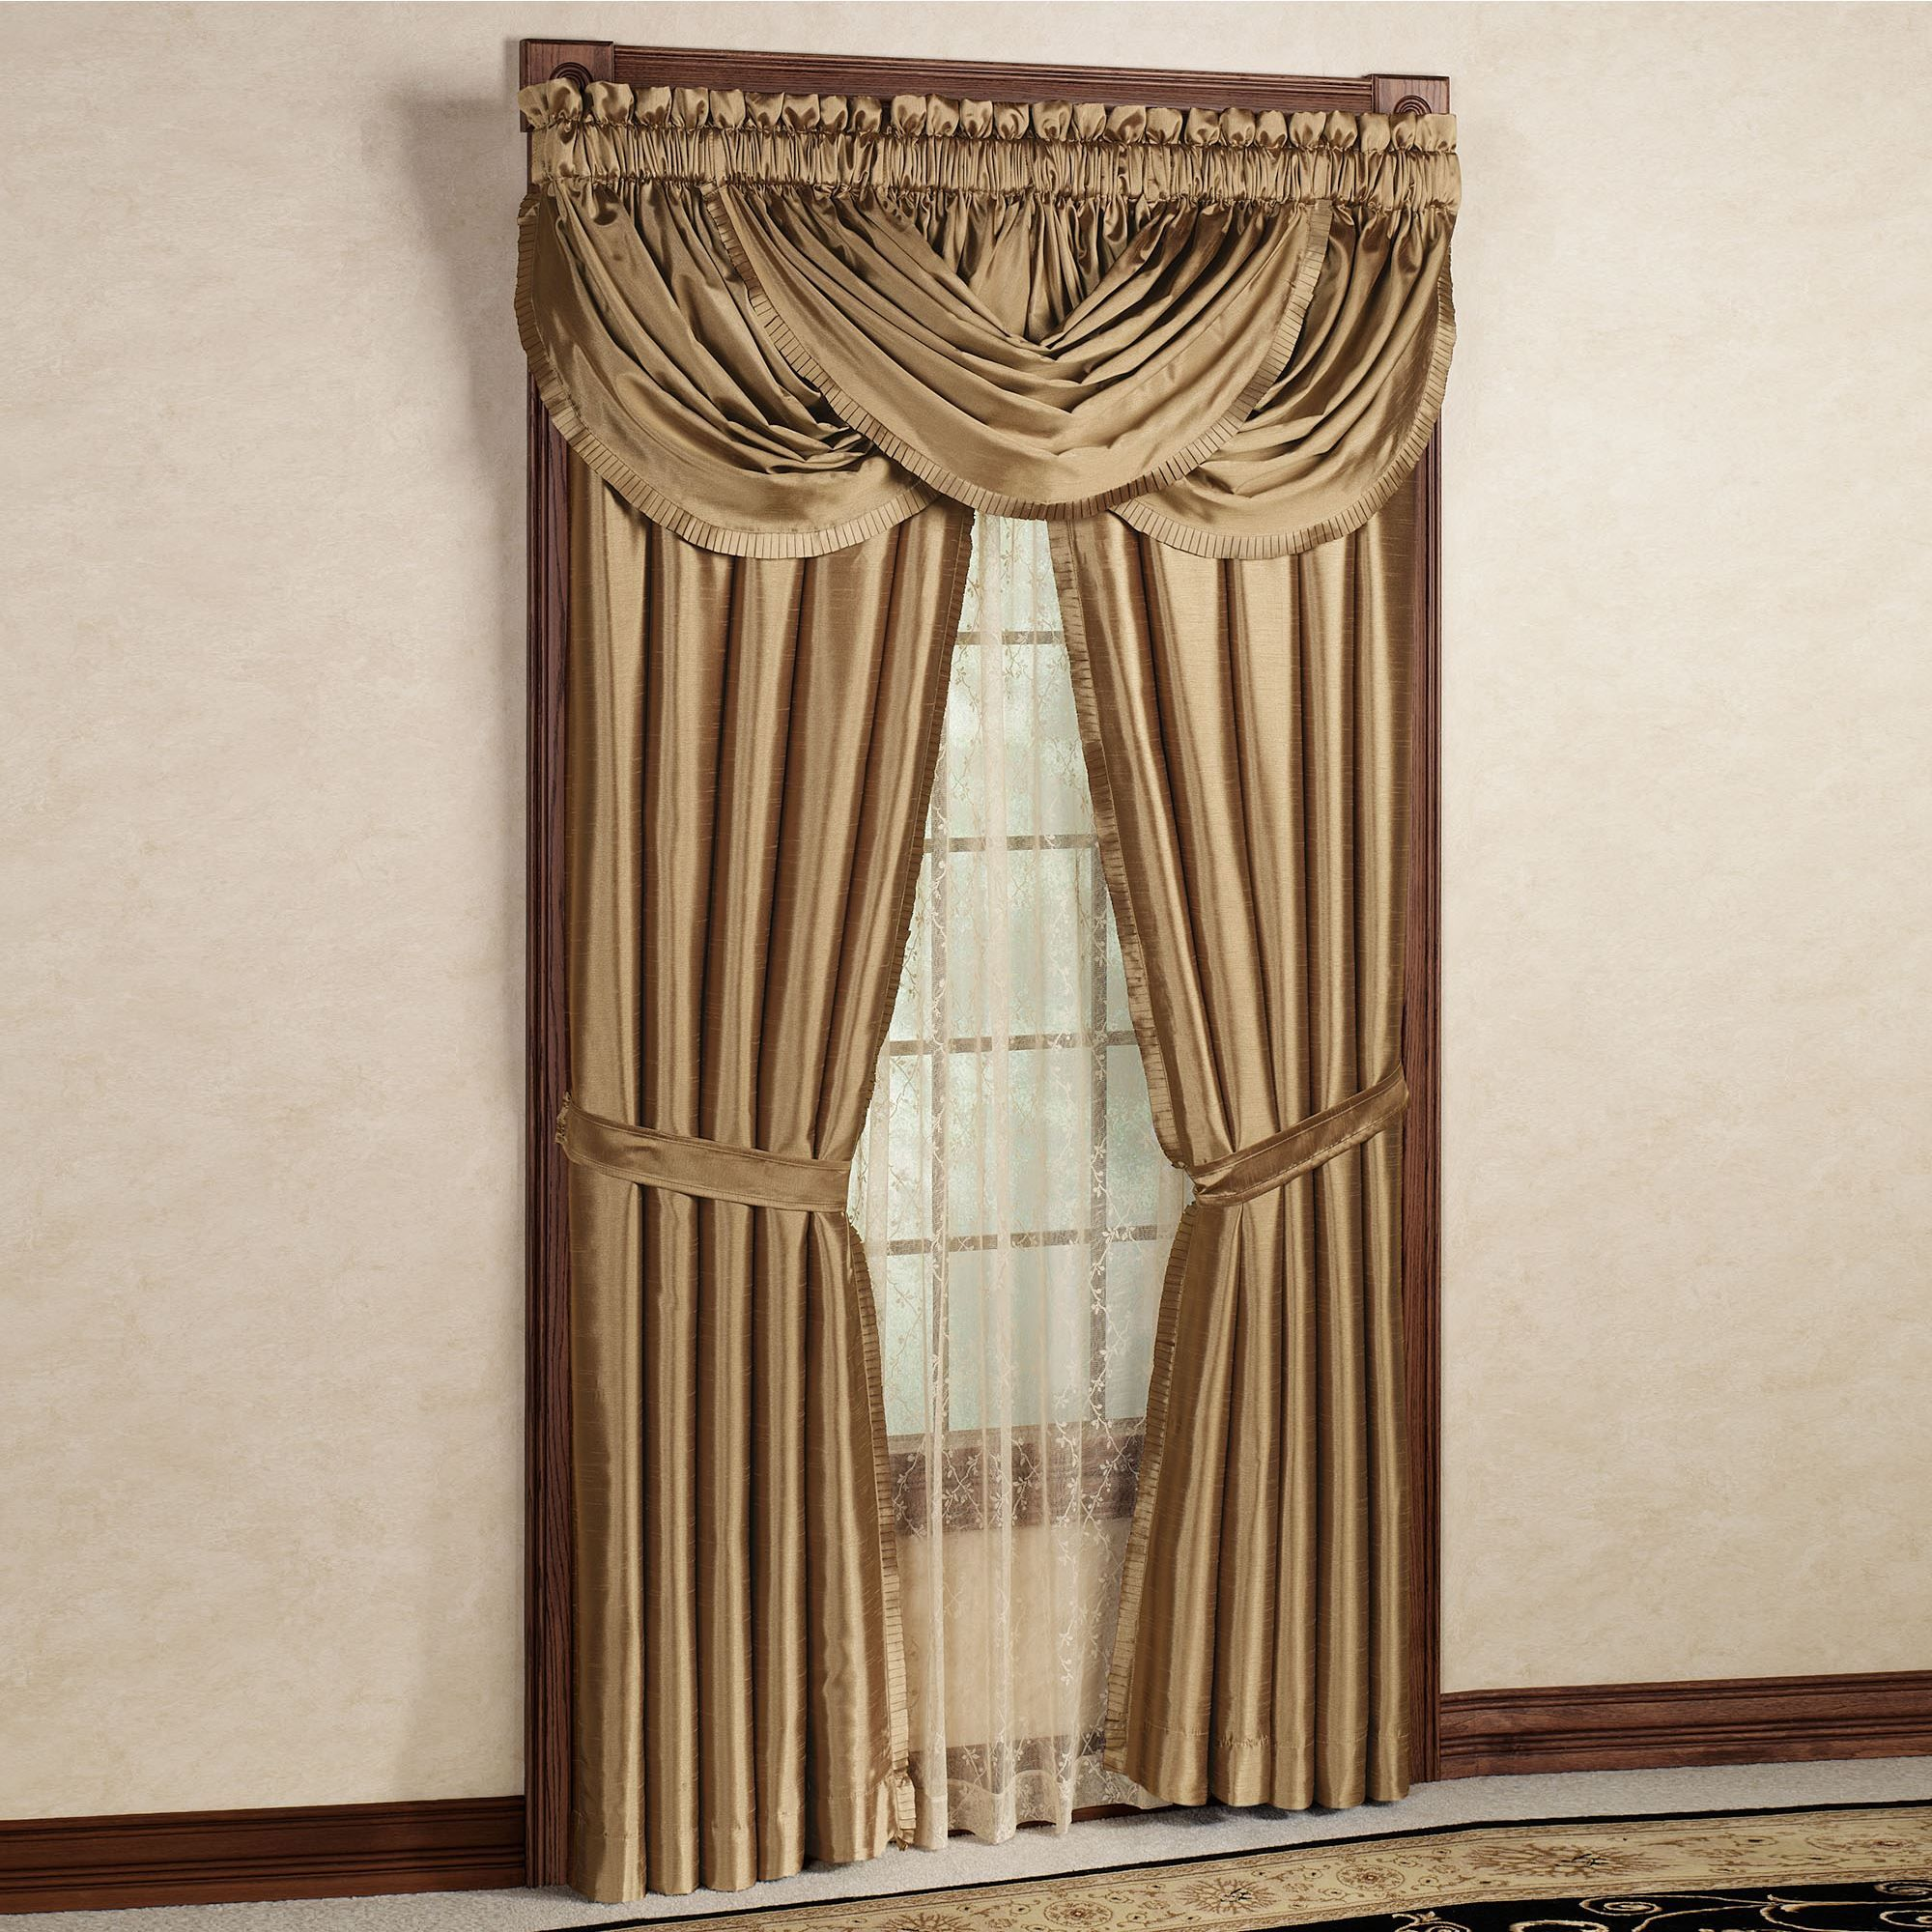 Living Room Curtains Sears In 2020 Curtains Window Treatments Home Decor